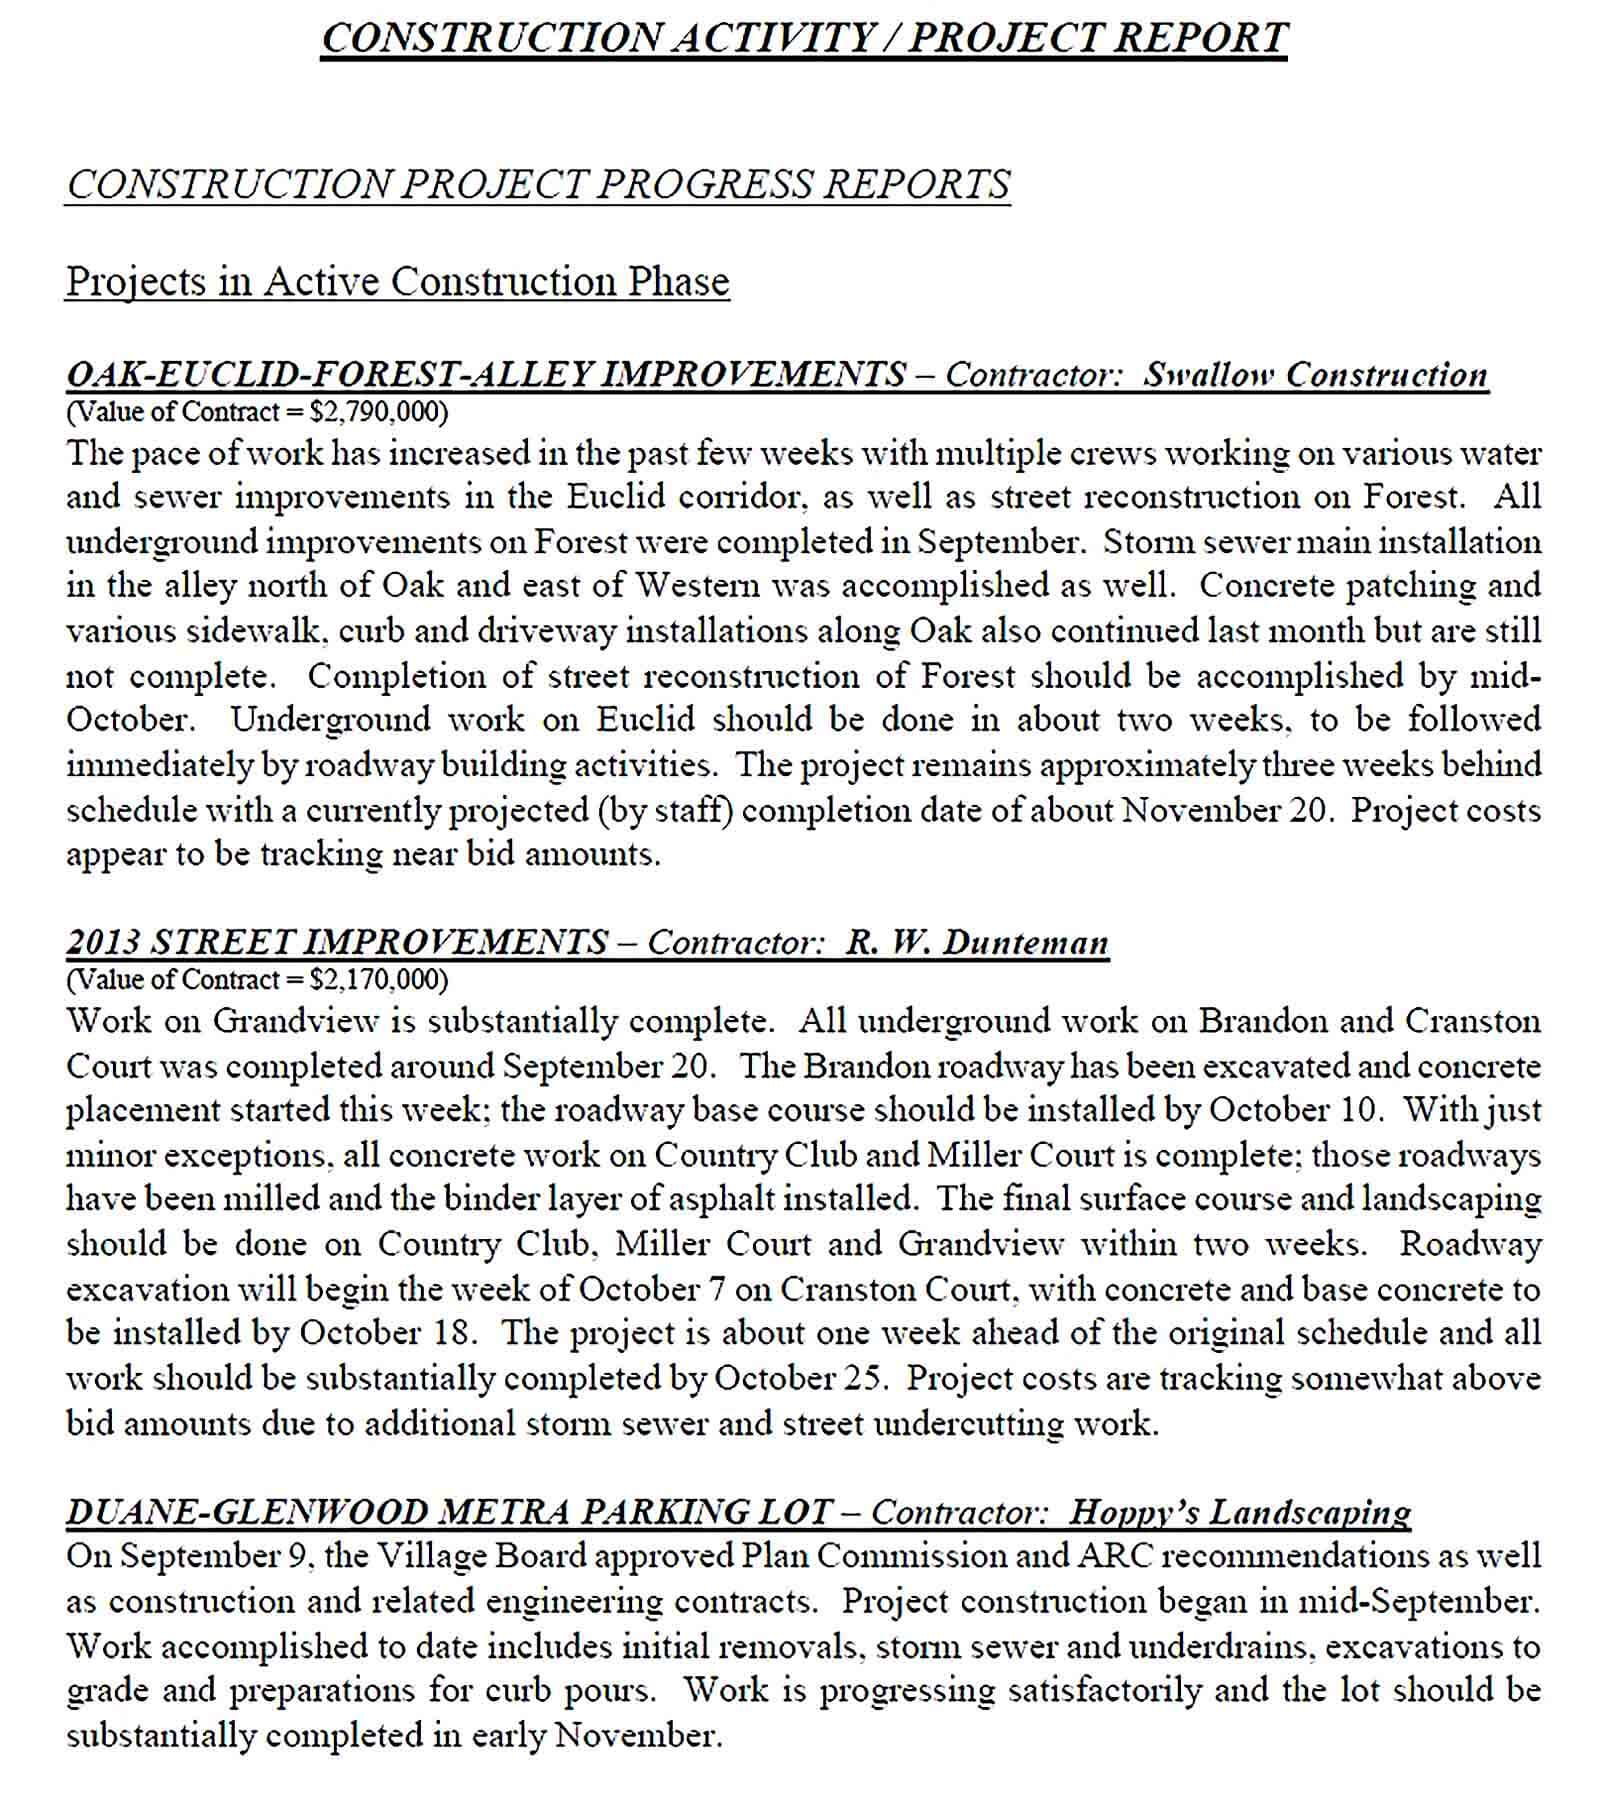 Sample Construction Activity Project Report Template